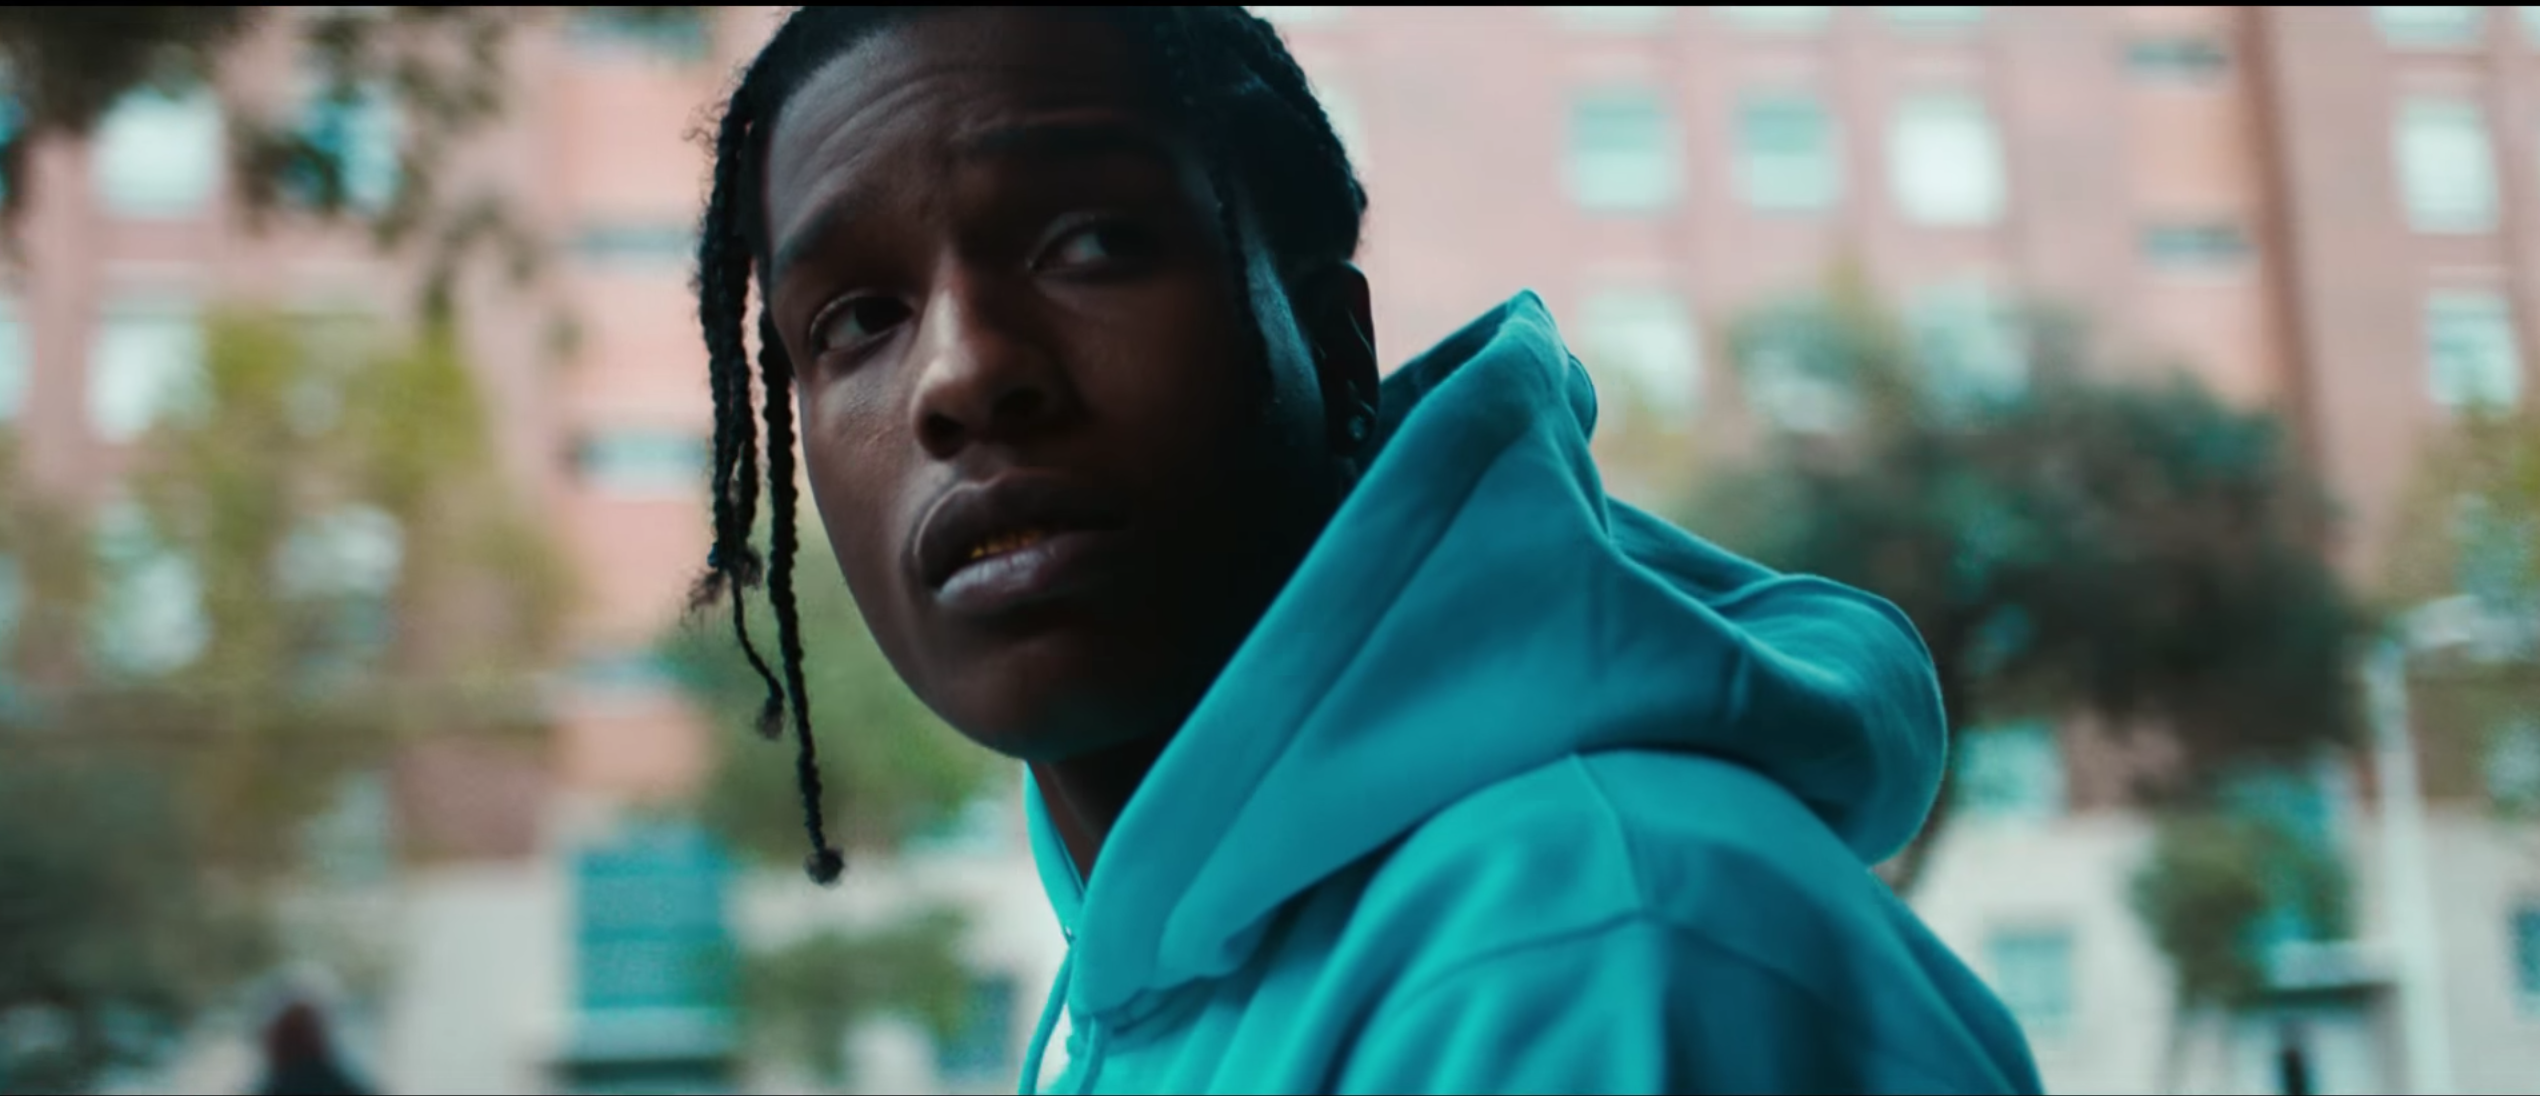 A$AP Rocky Opens Up About His Brothers Death In New Mercedes-Benz Advert